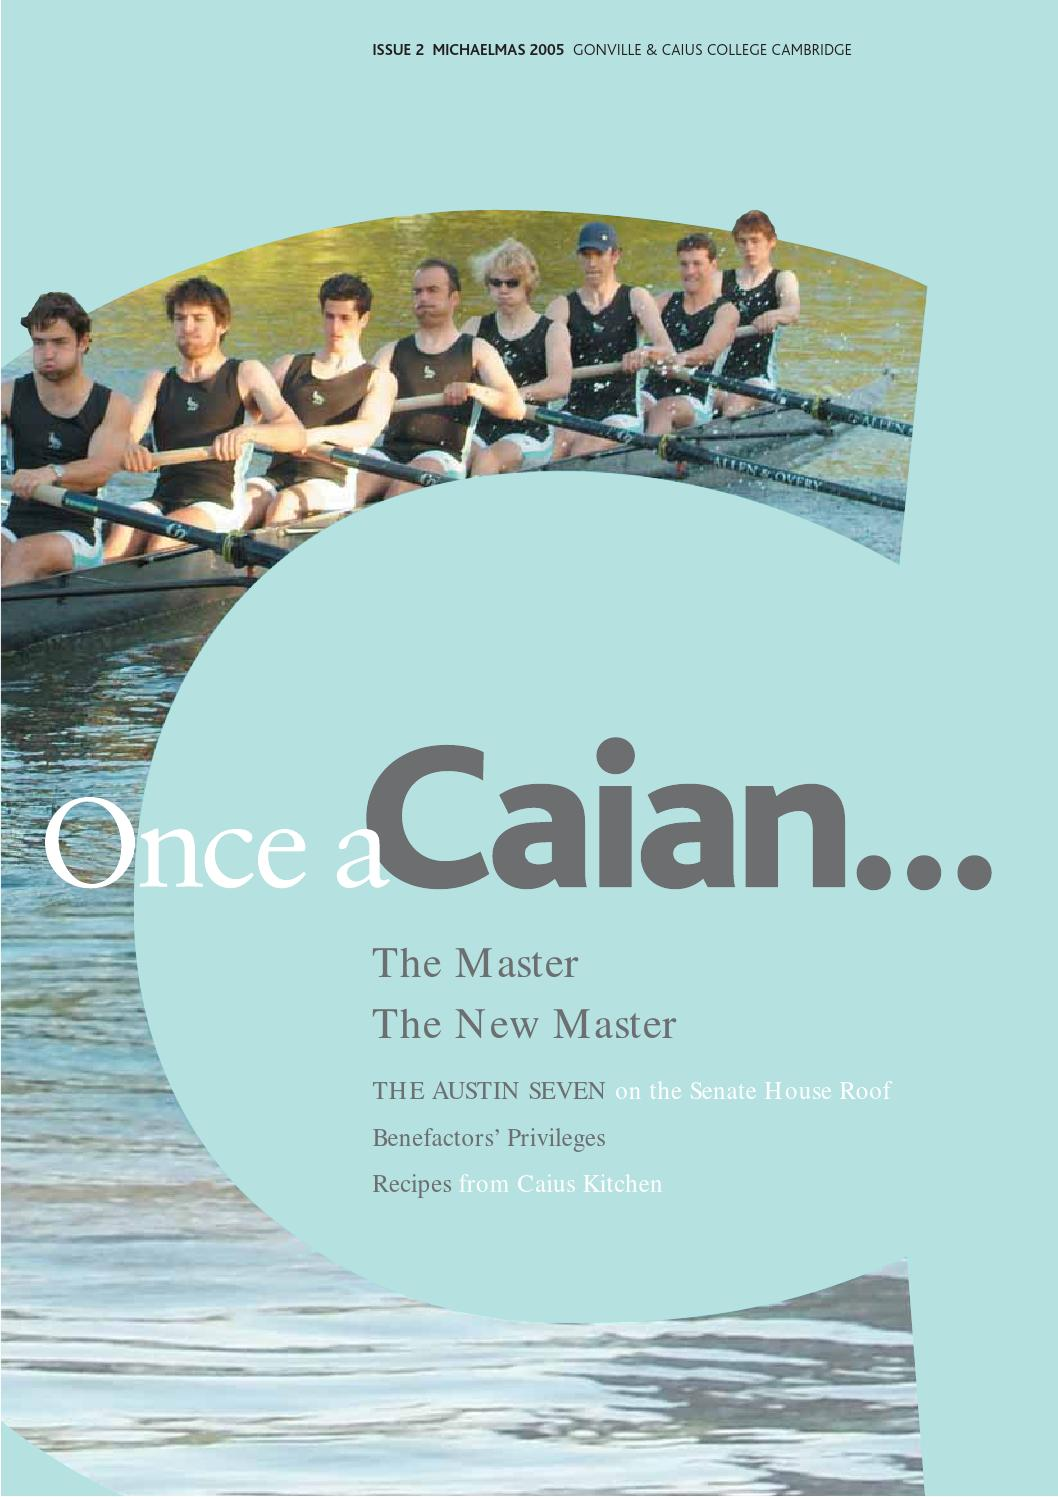 Once a caian issue 2 by gonville caius college issuu pooptronica